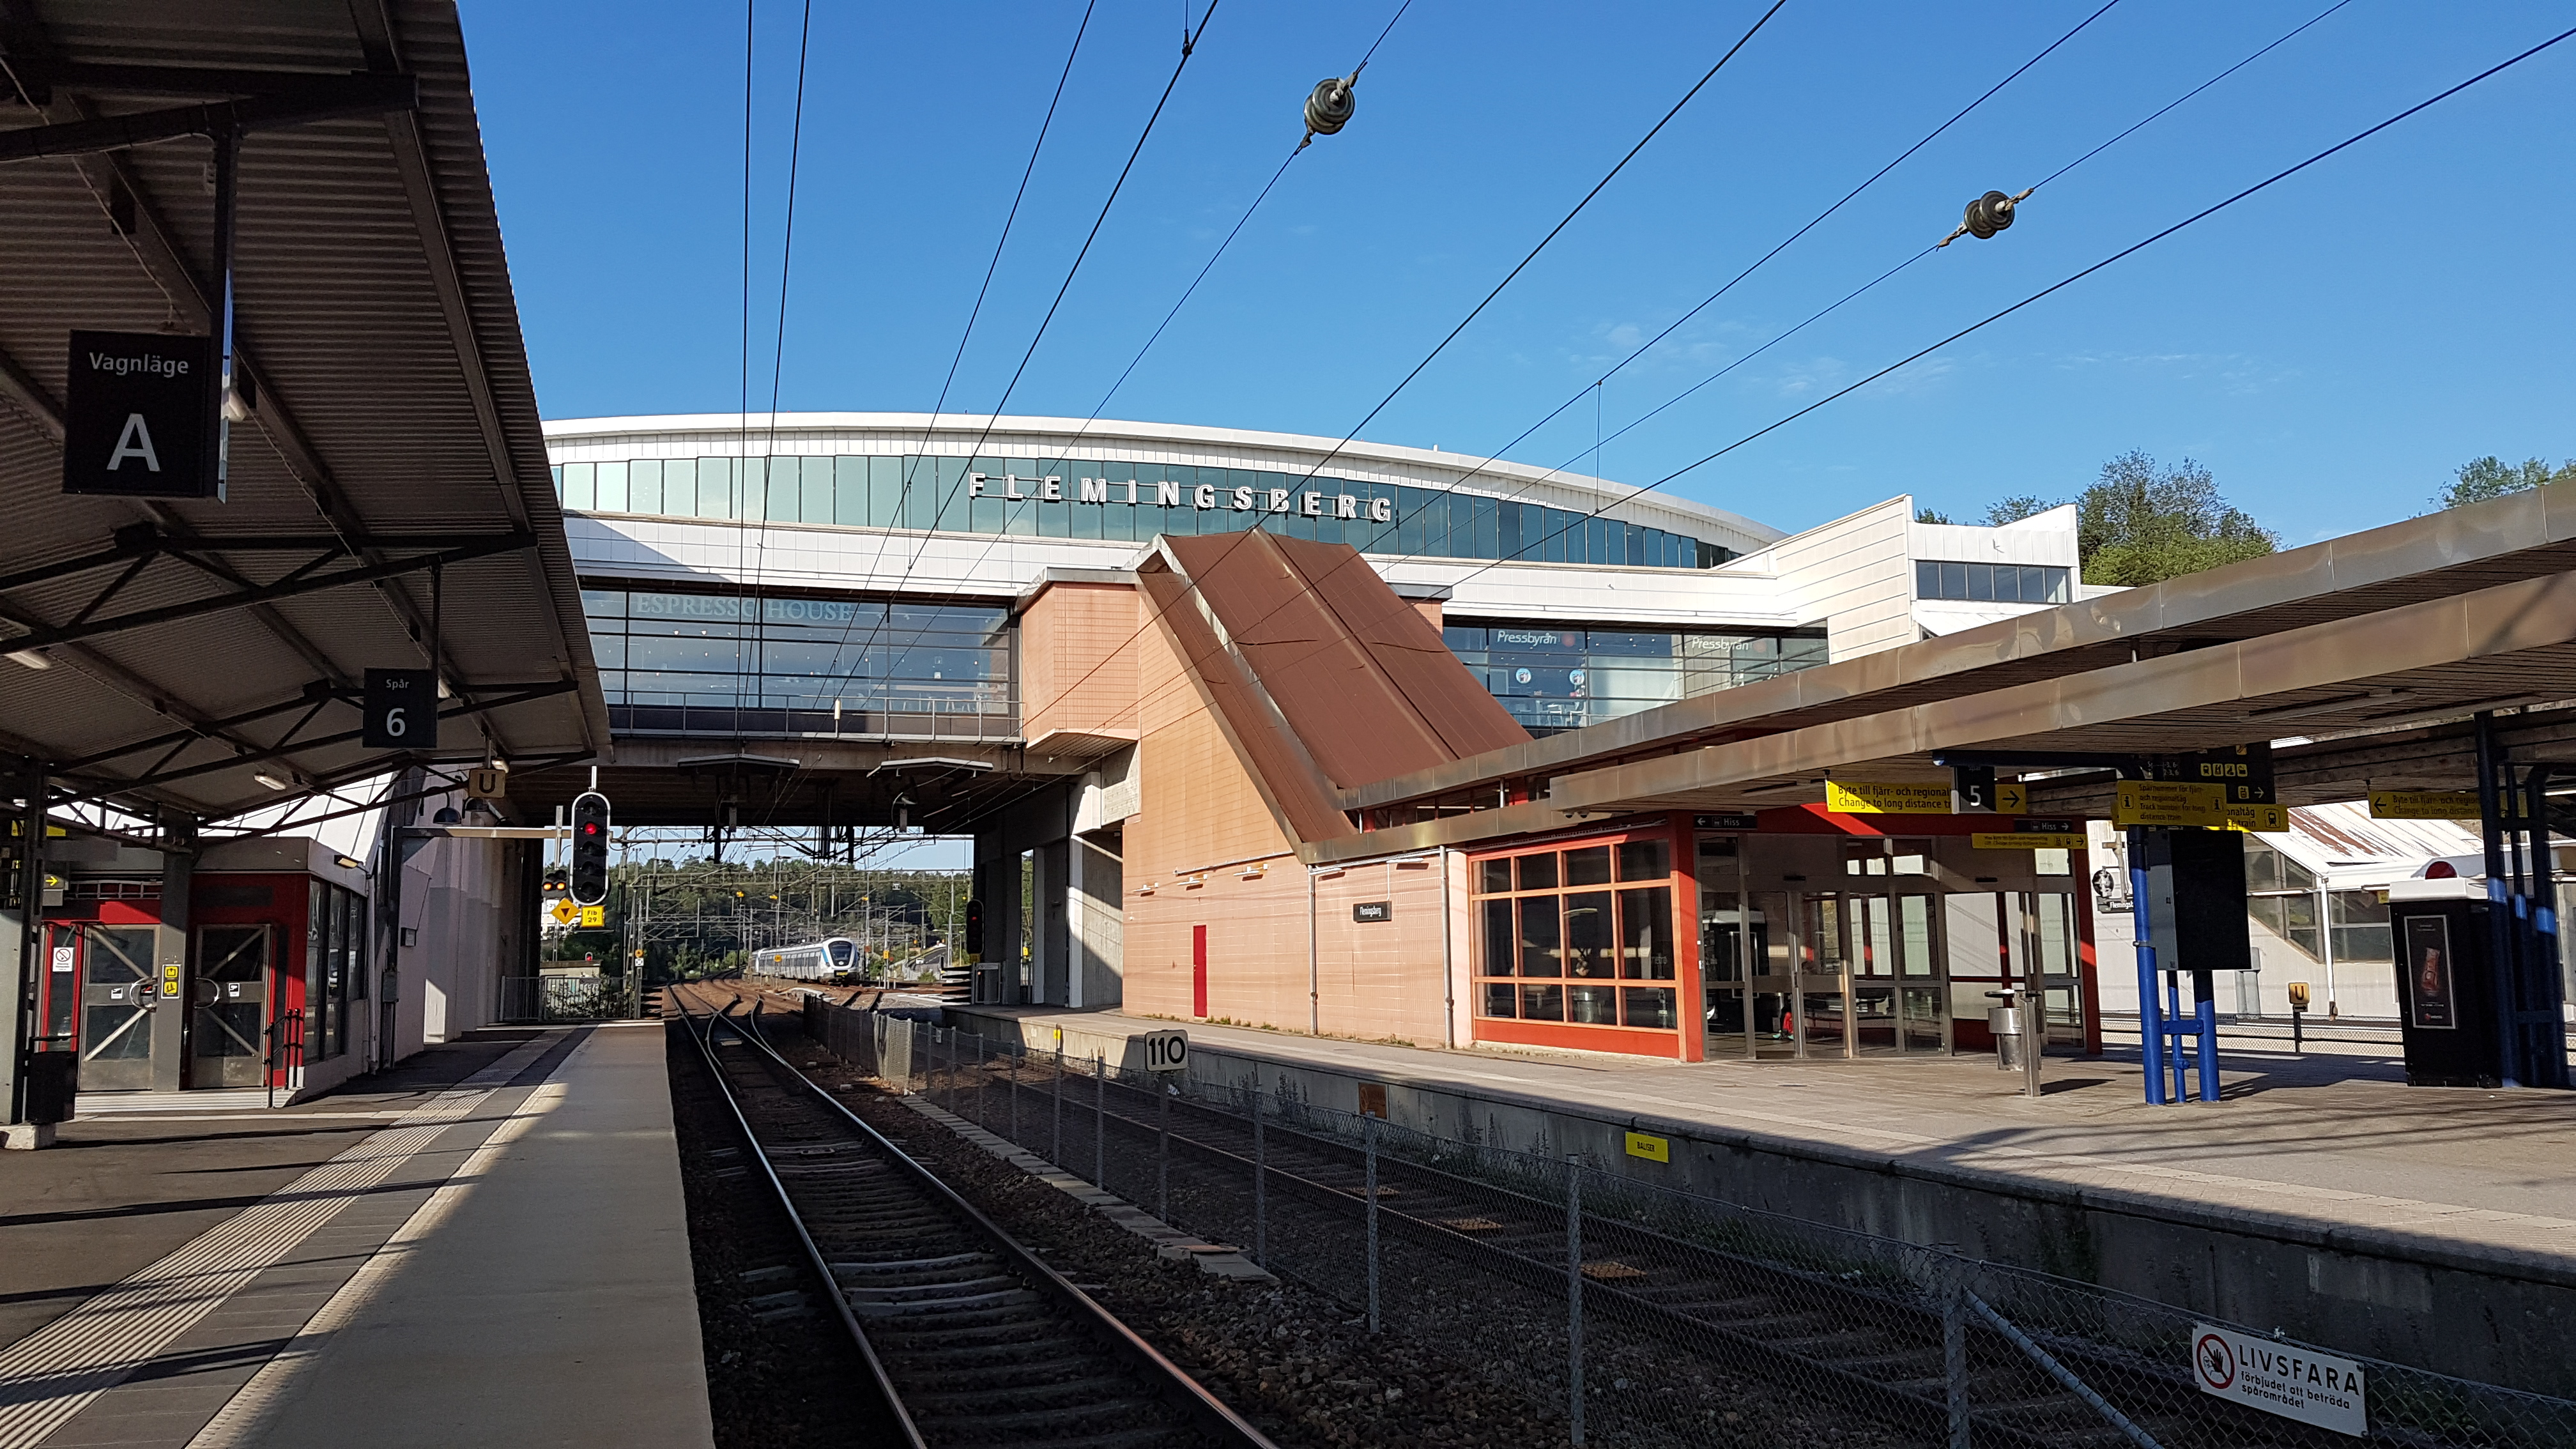 Kista to Huddinge sjukhus - 3 ways to travel via train, and line